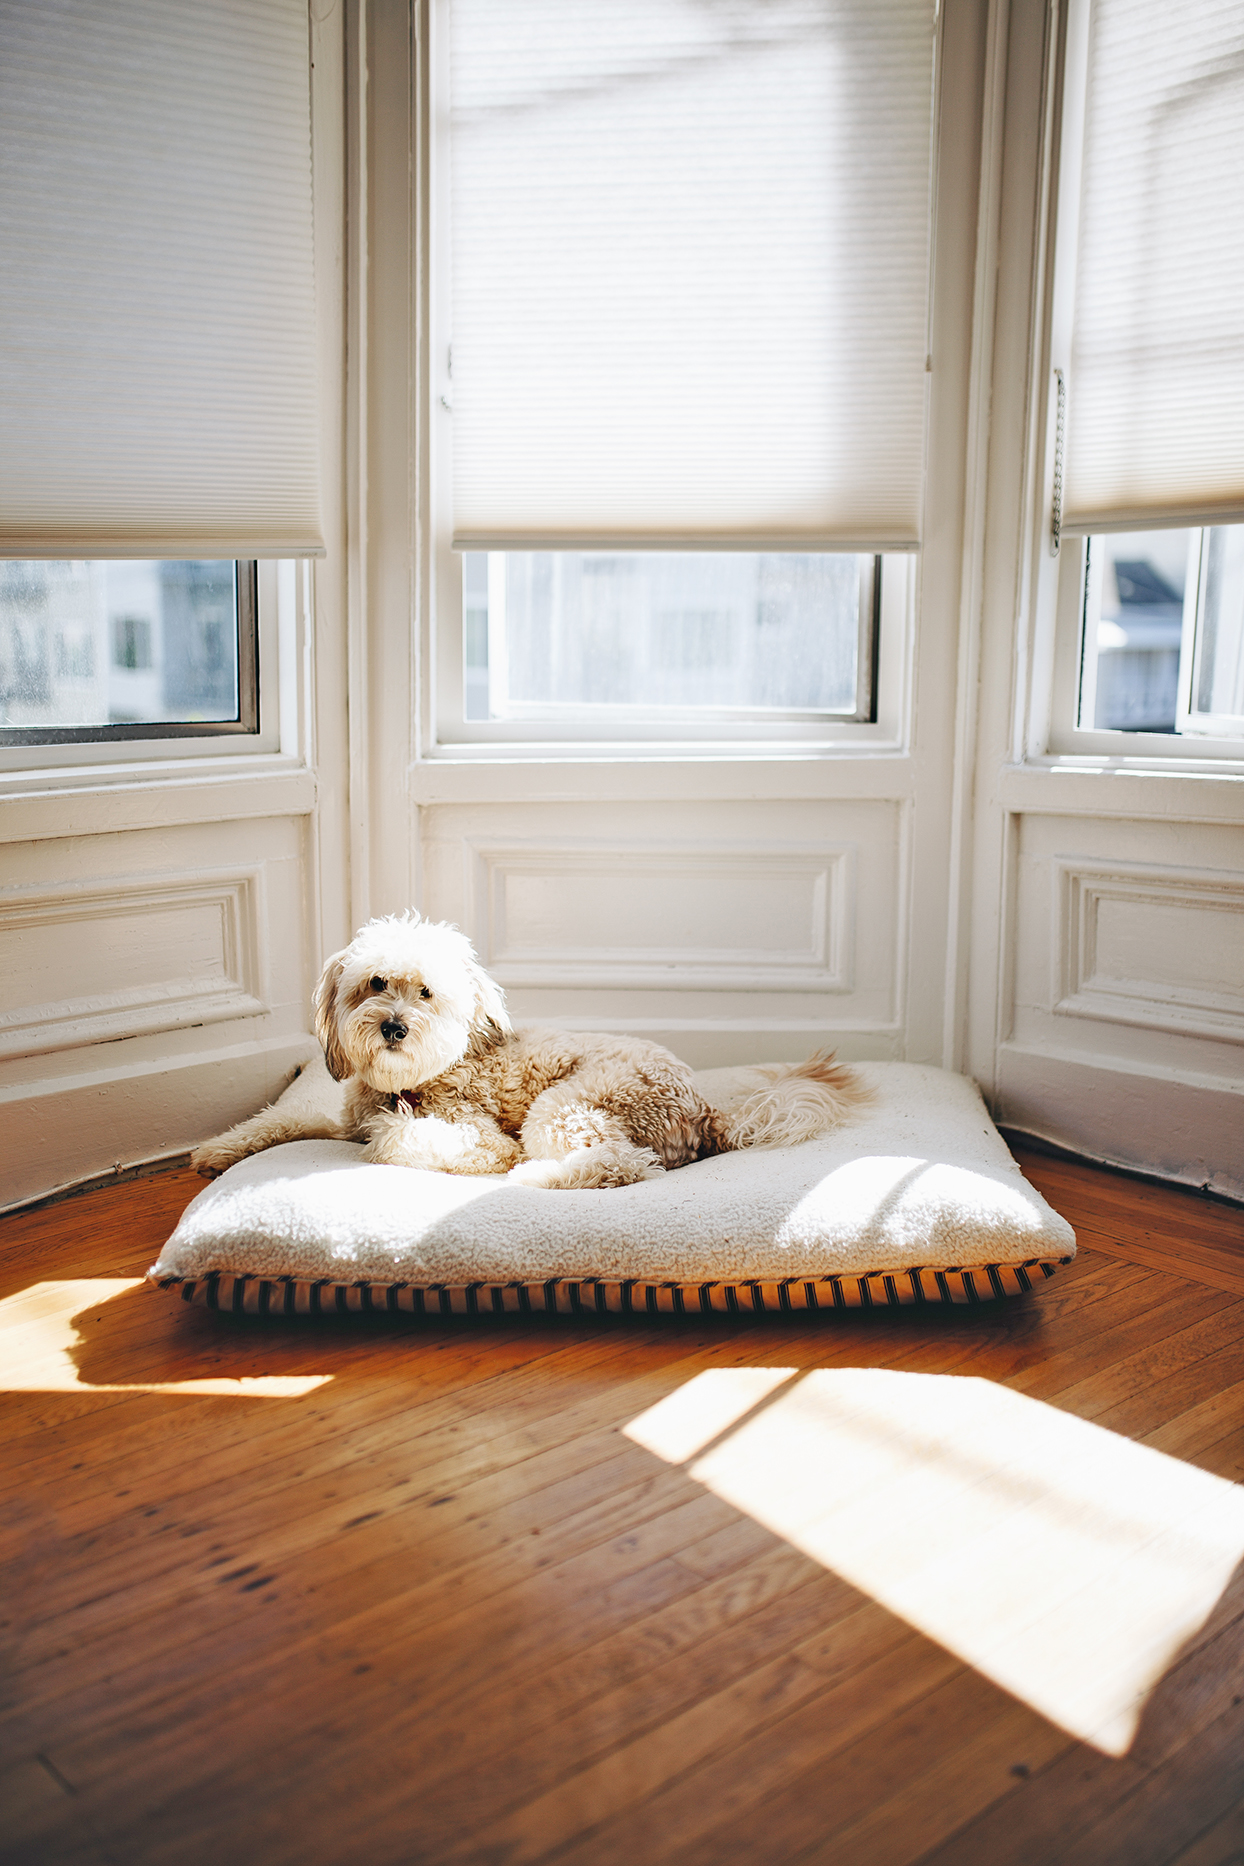 Adult blonde whoodle lays on dog bed on wooden floor below windows